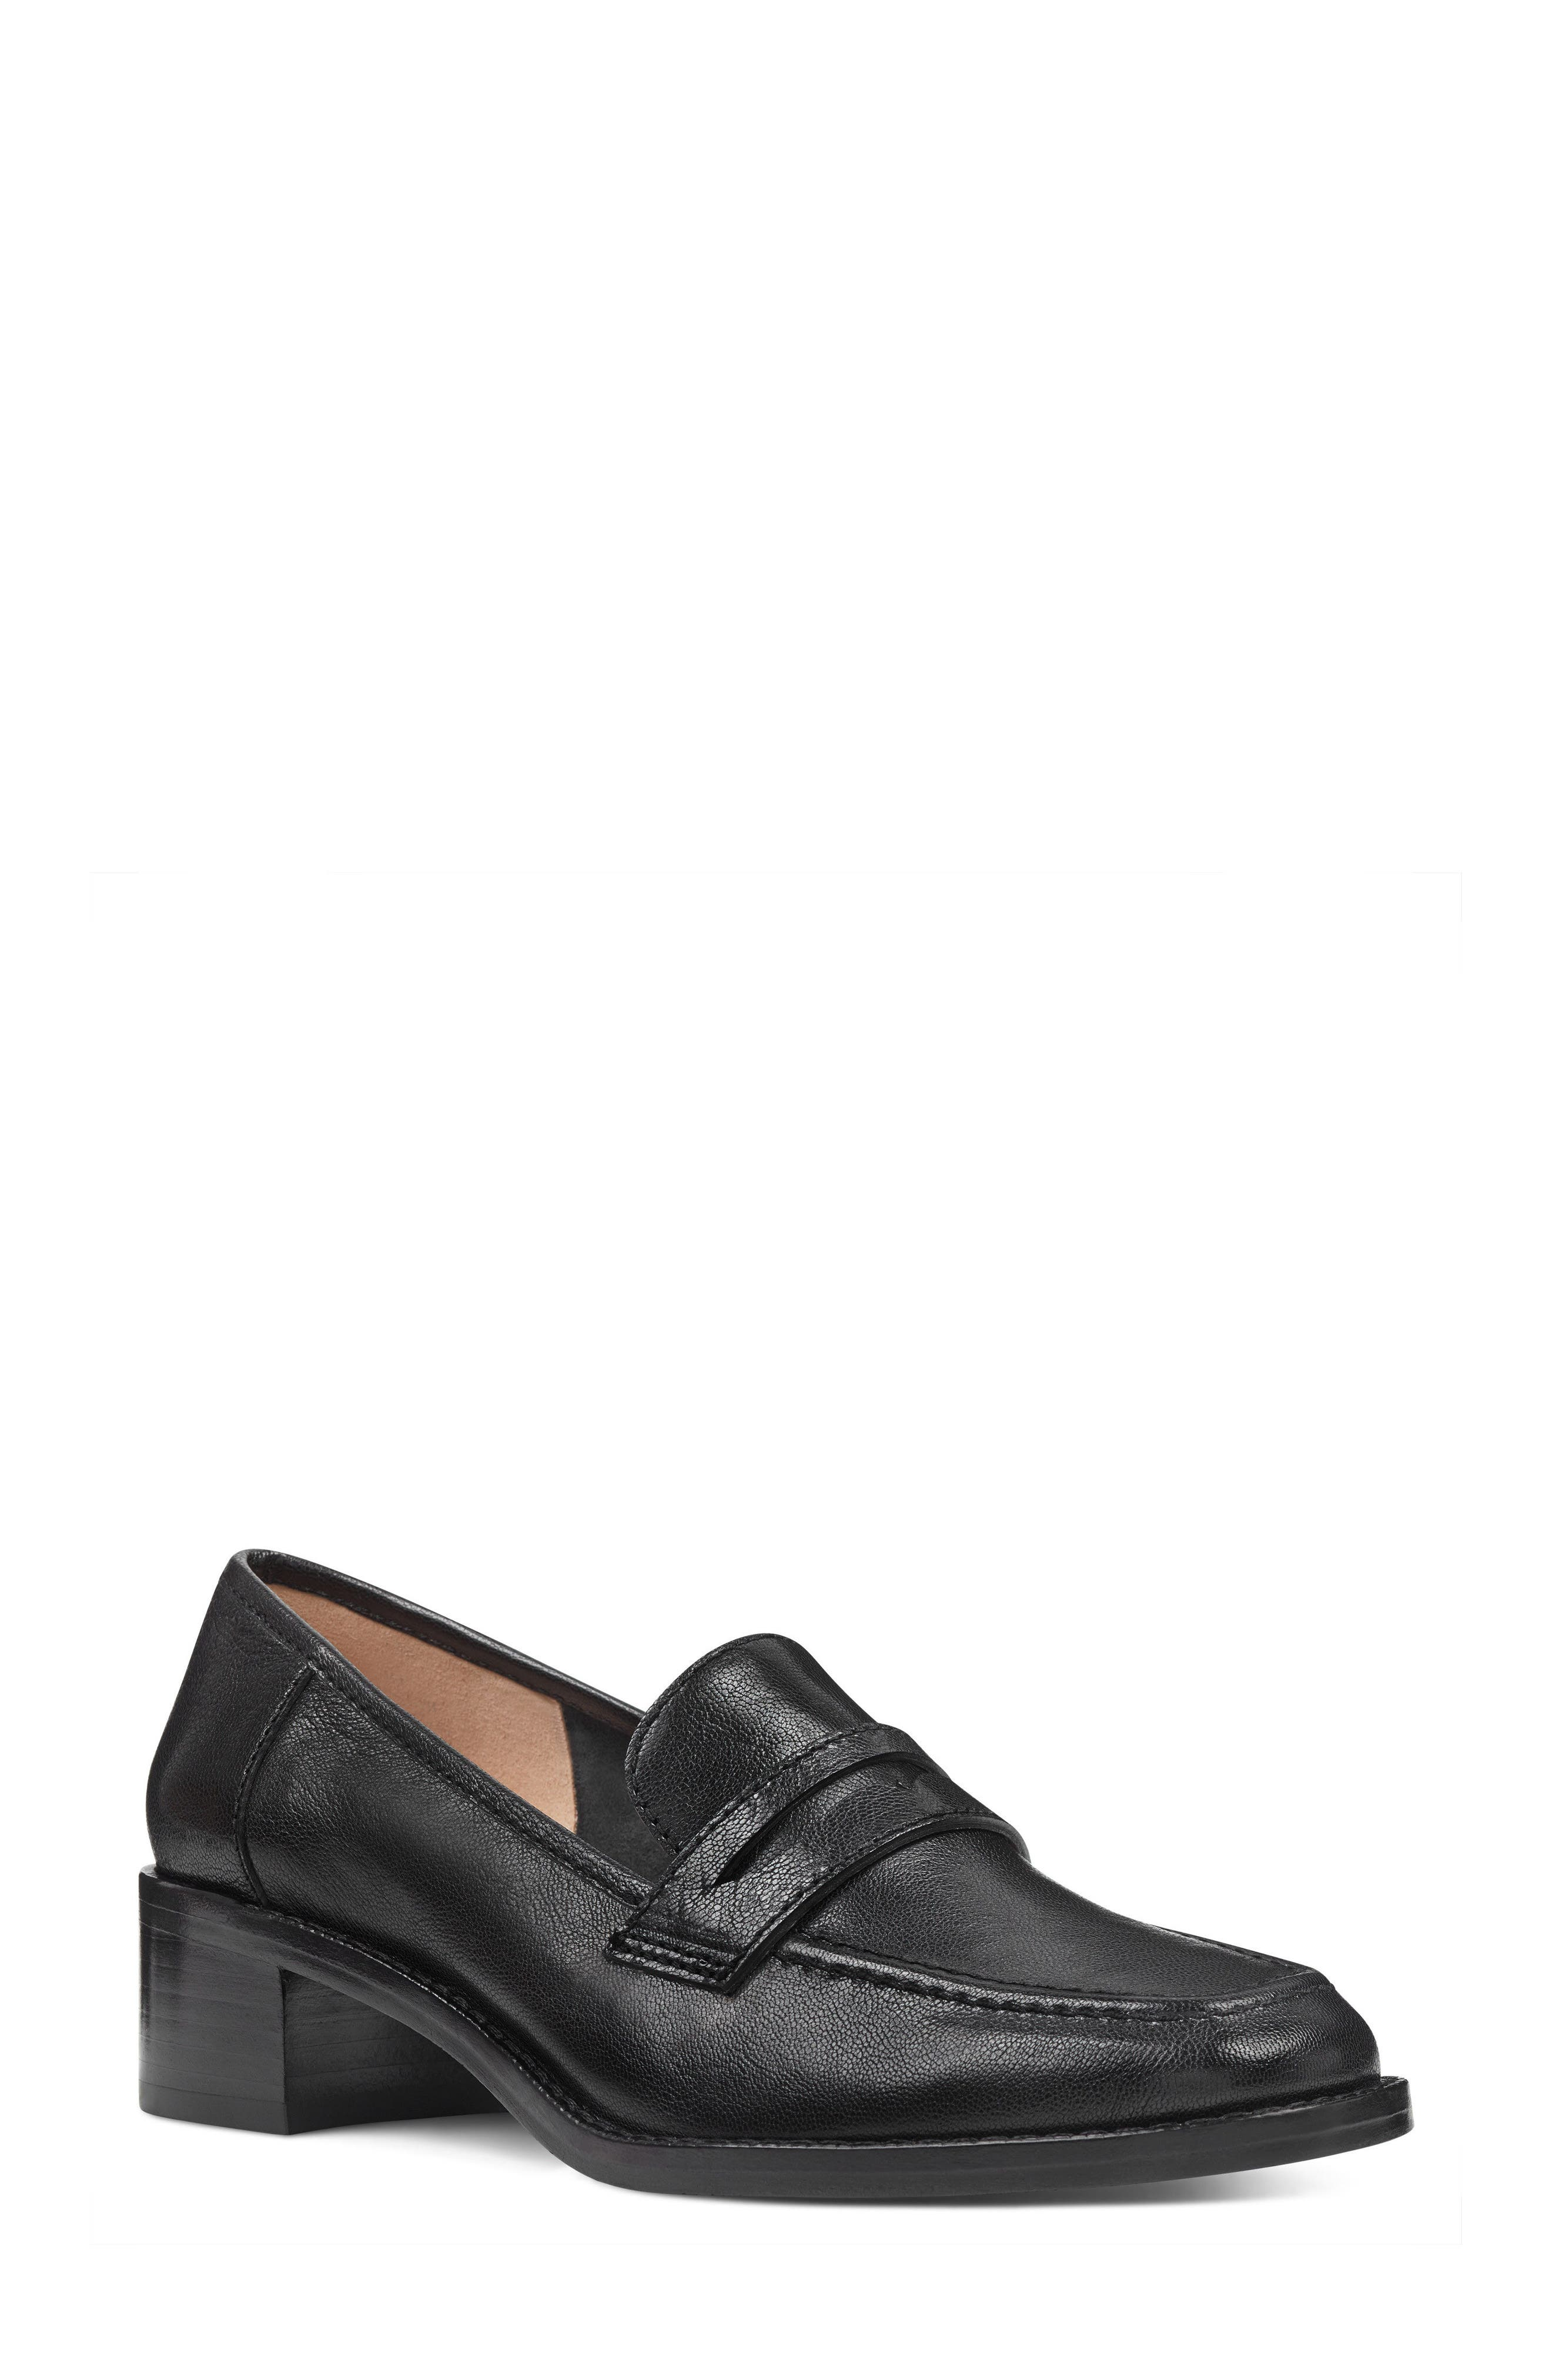 Kimmy - 40th Anniversary Capsule Collection Penny Loafer,                             Main thumbnail 1, color,                             BLACK LEATHER